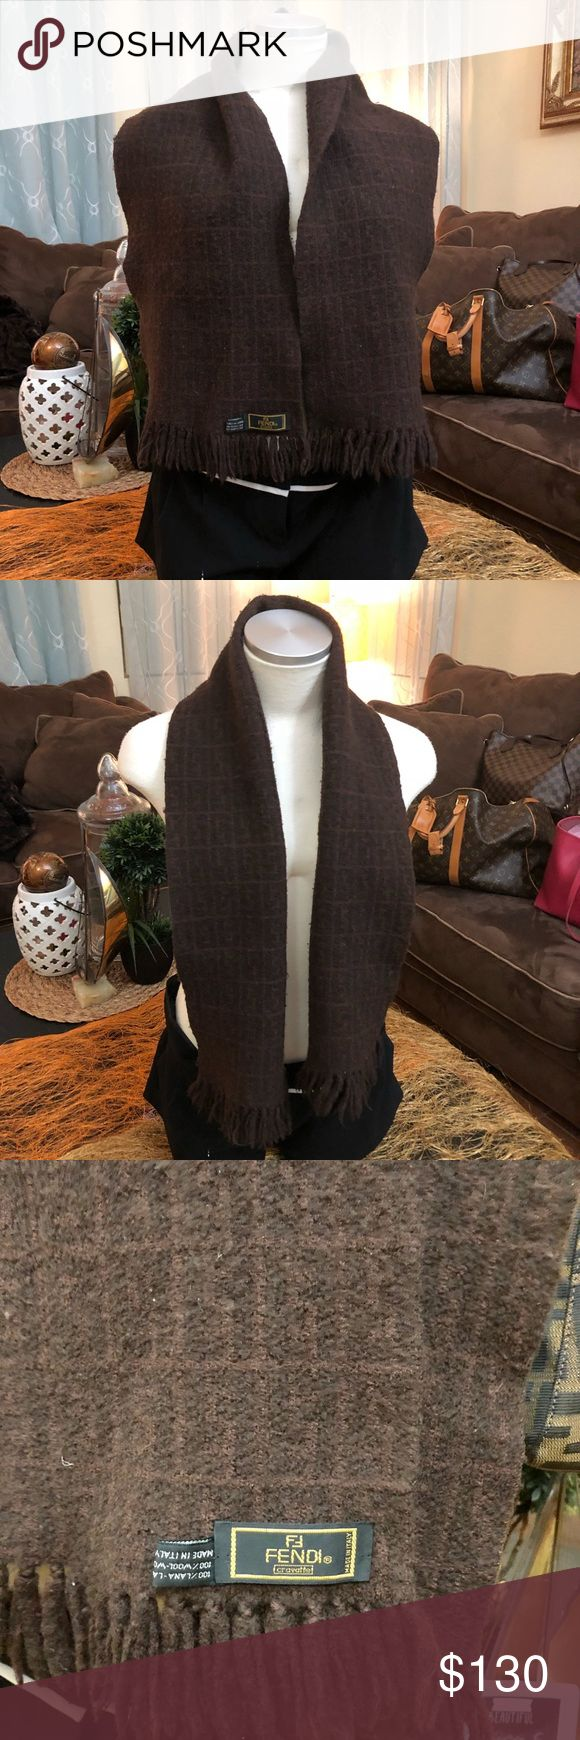 Fendi Scarf Pre-loved, 💯percent aunthentic Fendi Accessories Scarves & Wraps